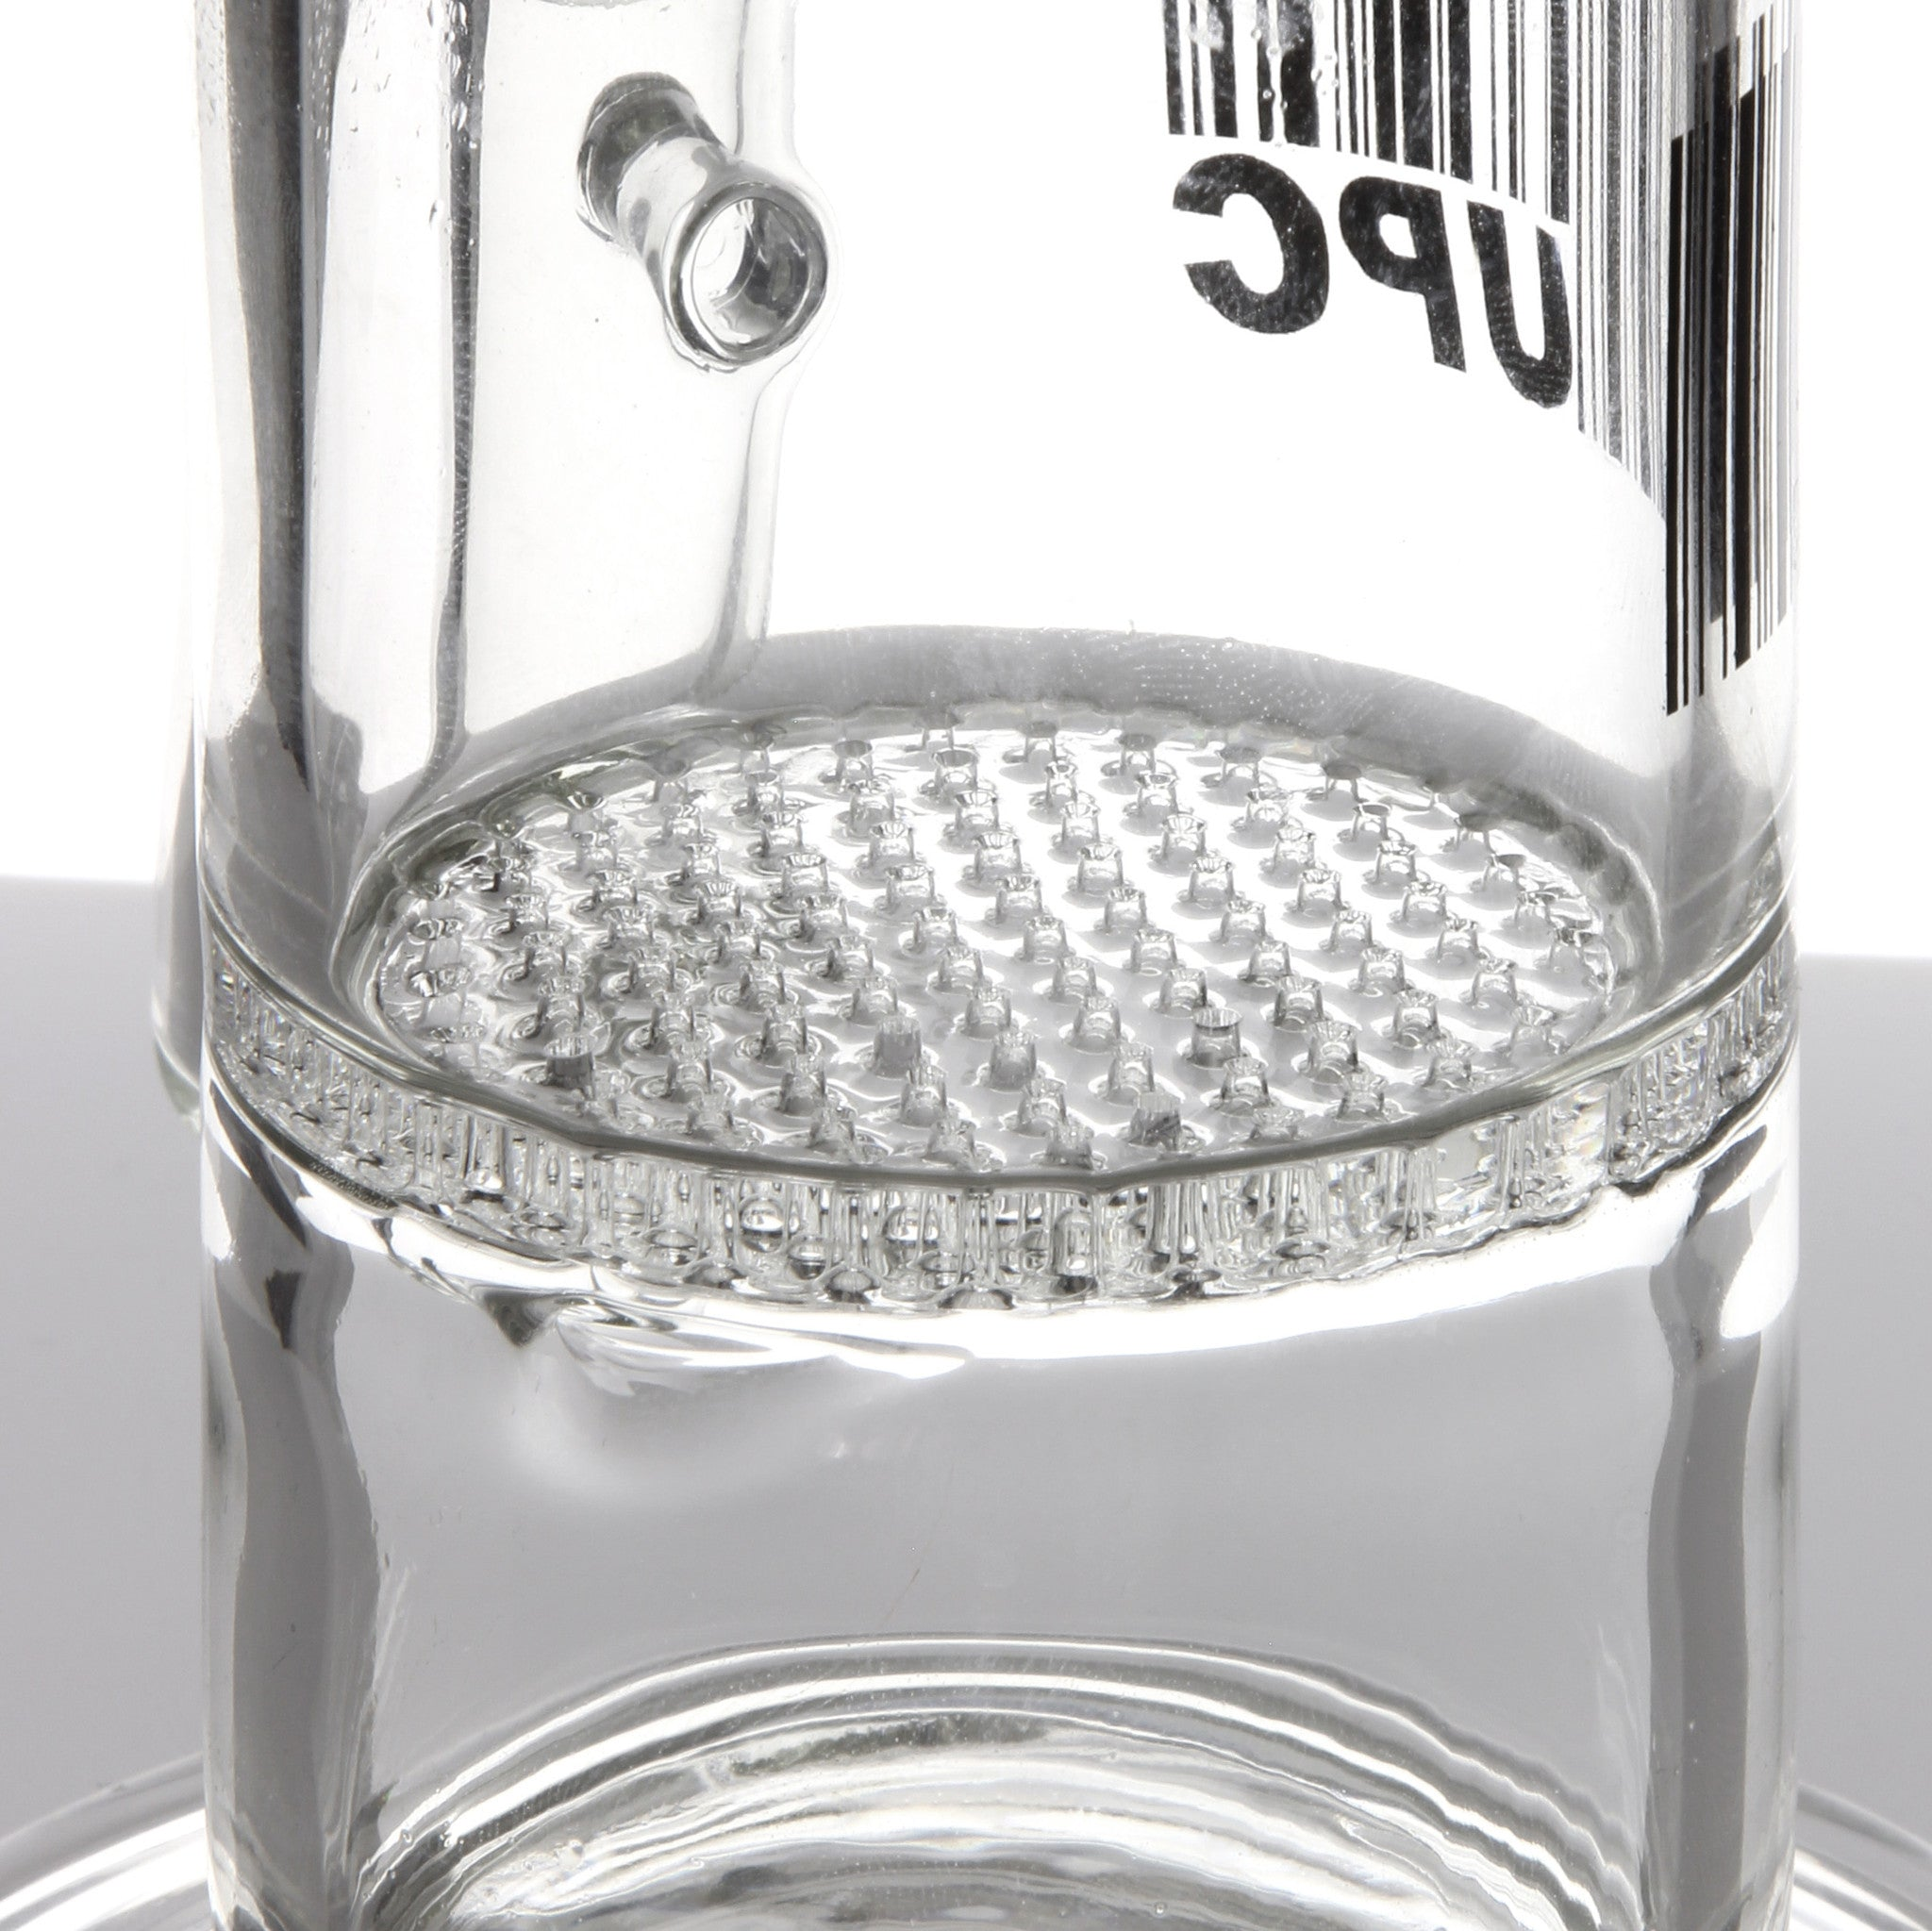 UPC - Honeycomb Perc Water Pipe with Splash Guard